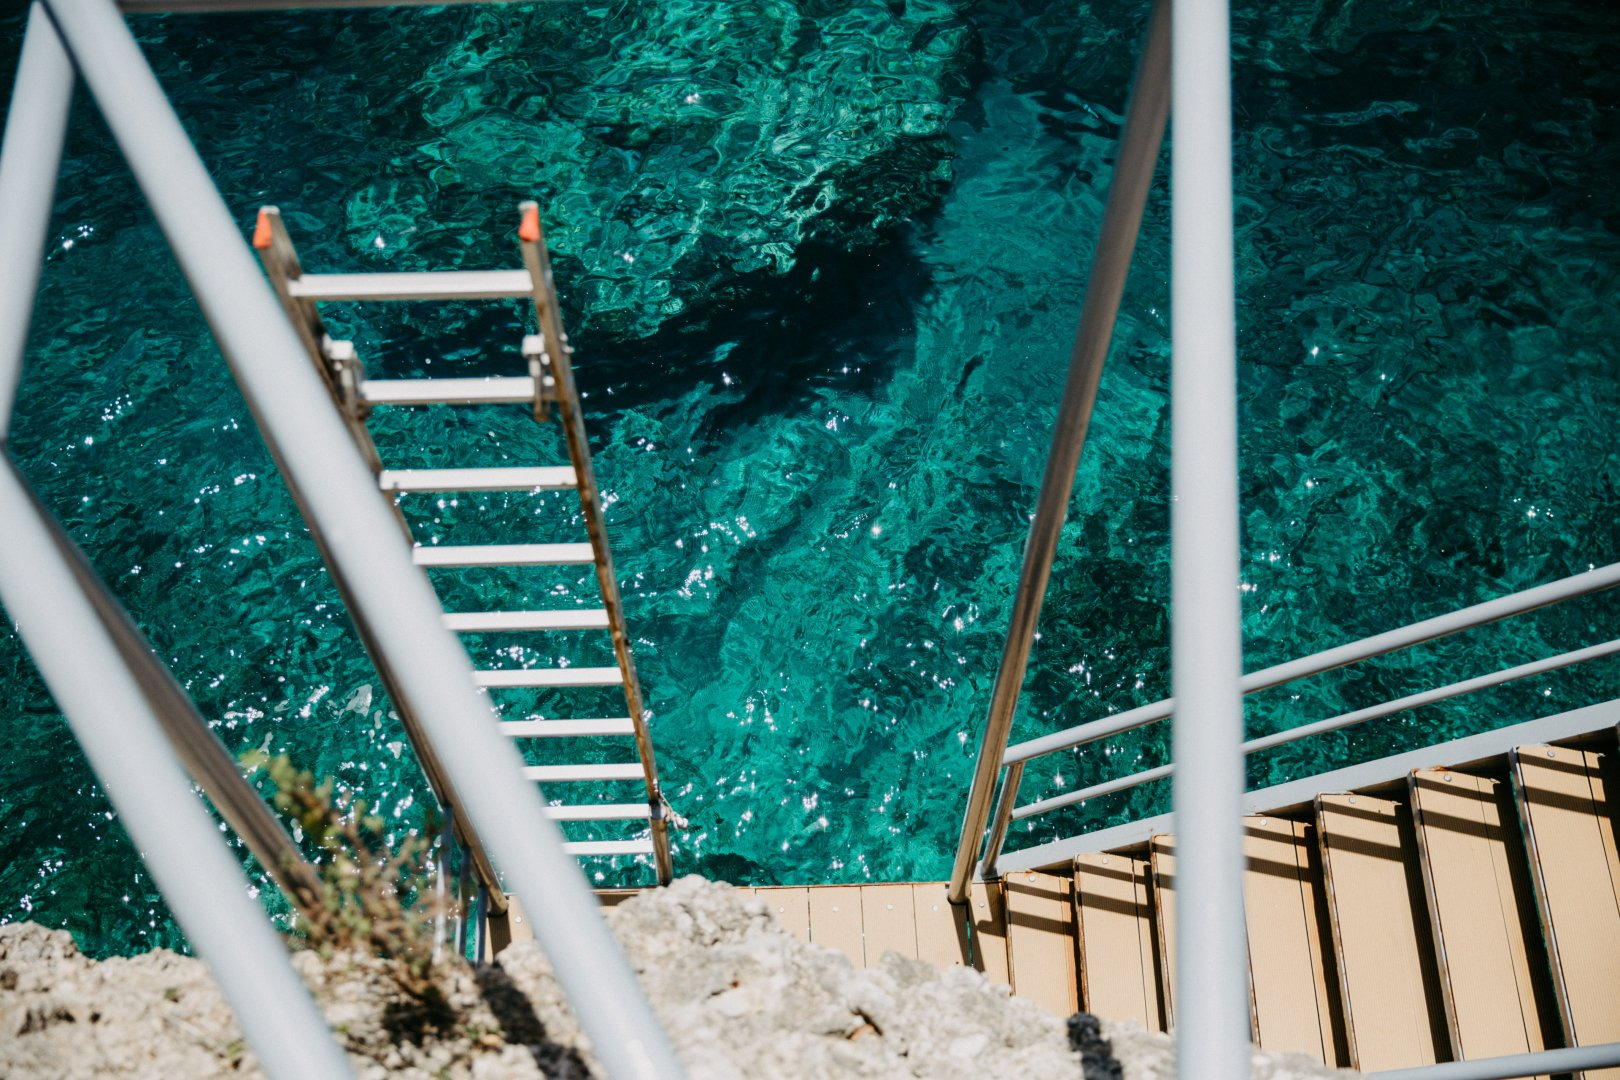 Blue Water Green Turquoise Stairs Aqua Teal Handrail Line Tree Turquoise Architecture Glass Wood Parallel House Baluster